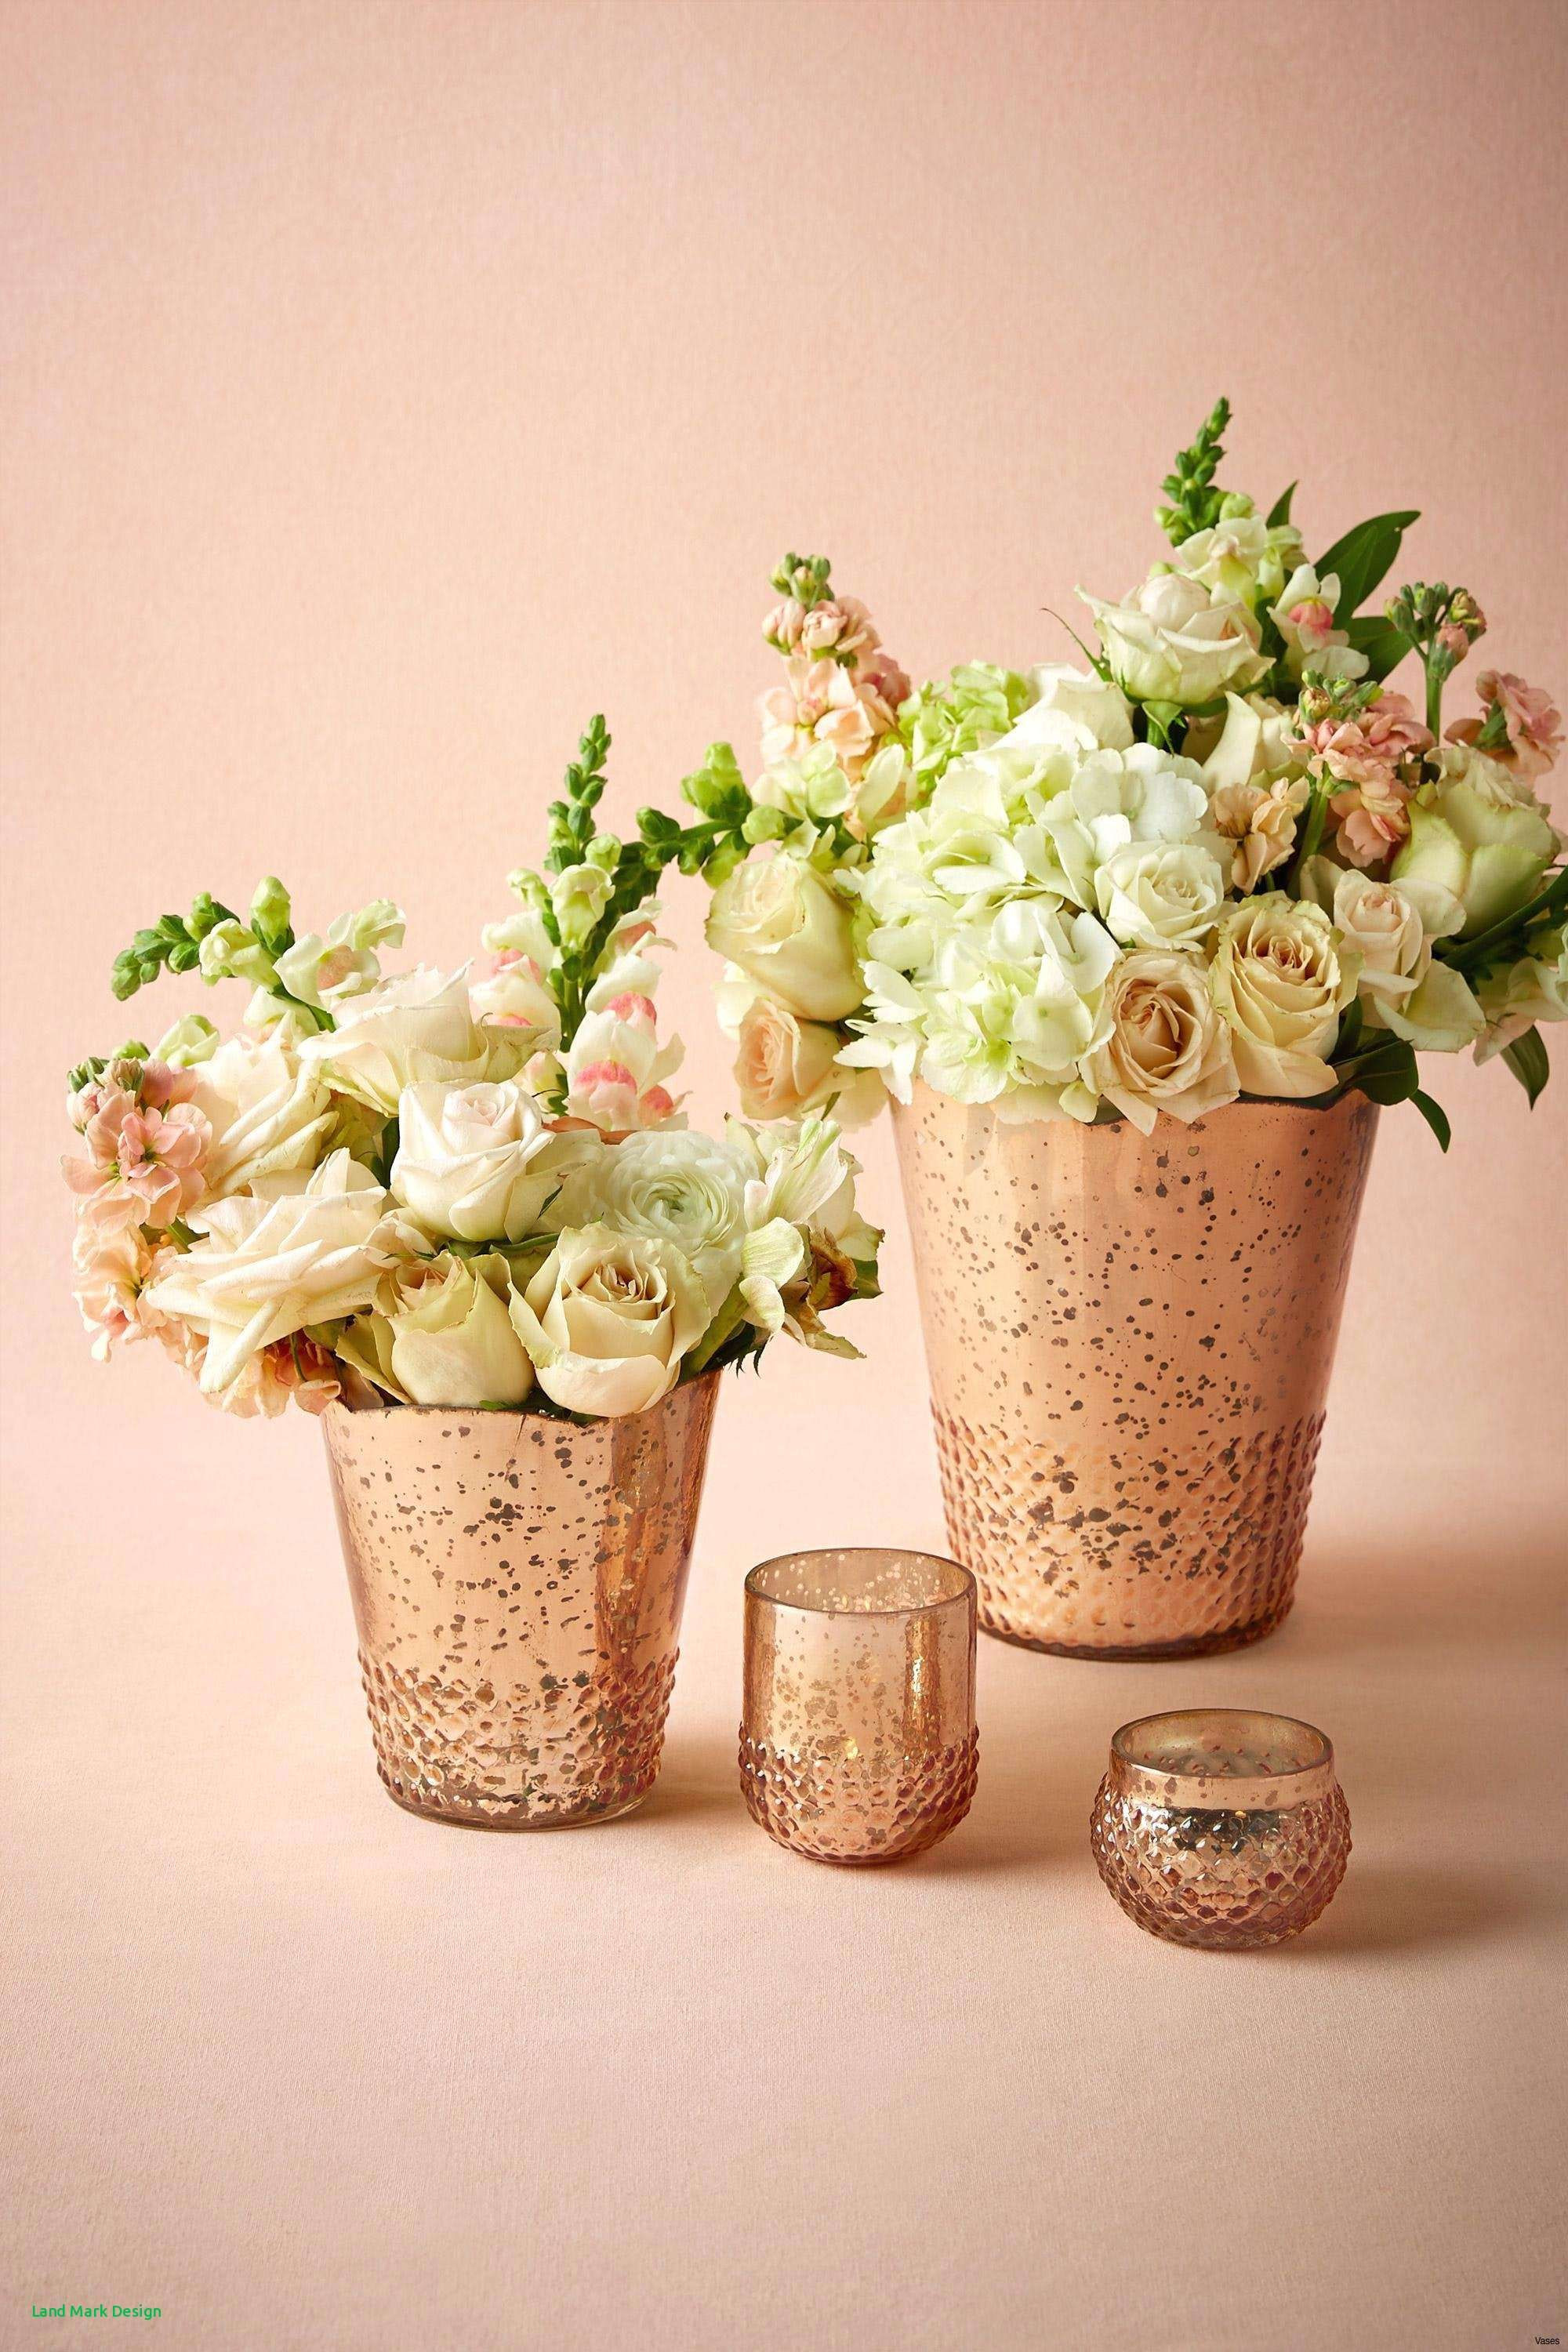 Bulk order Vases Of Centerpiece Vases Bulk Elegant Flower Decorations Ideas the Weekly Regarding Centerpiece Vases Bulk Elegant Flower Decorations Ideas